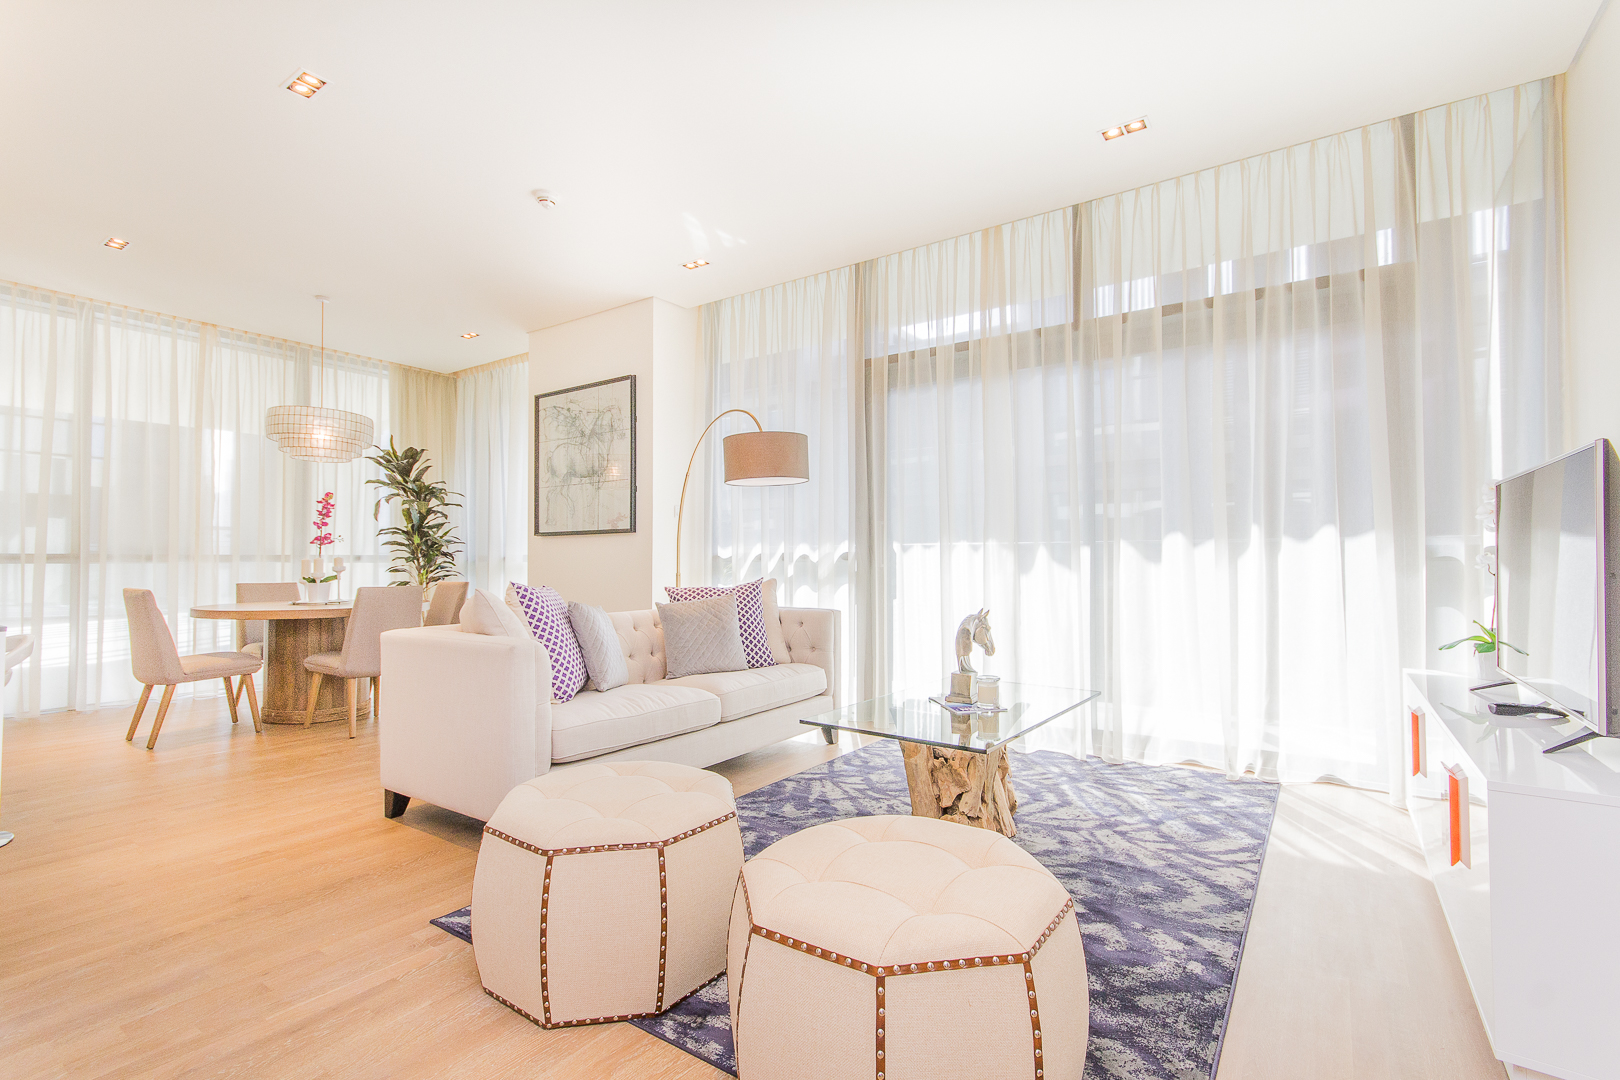 Charming 1 BR in City Walk #307 photo 21149005